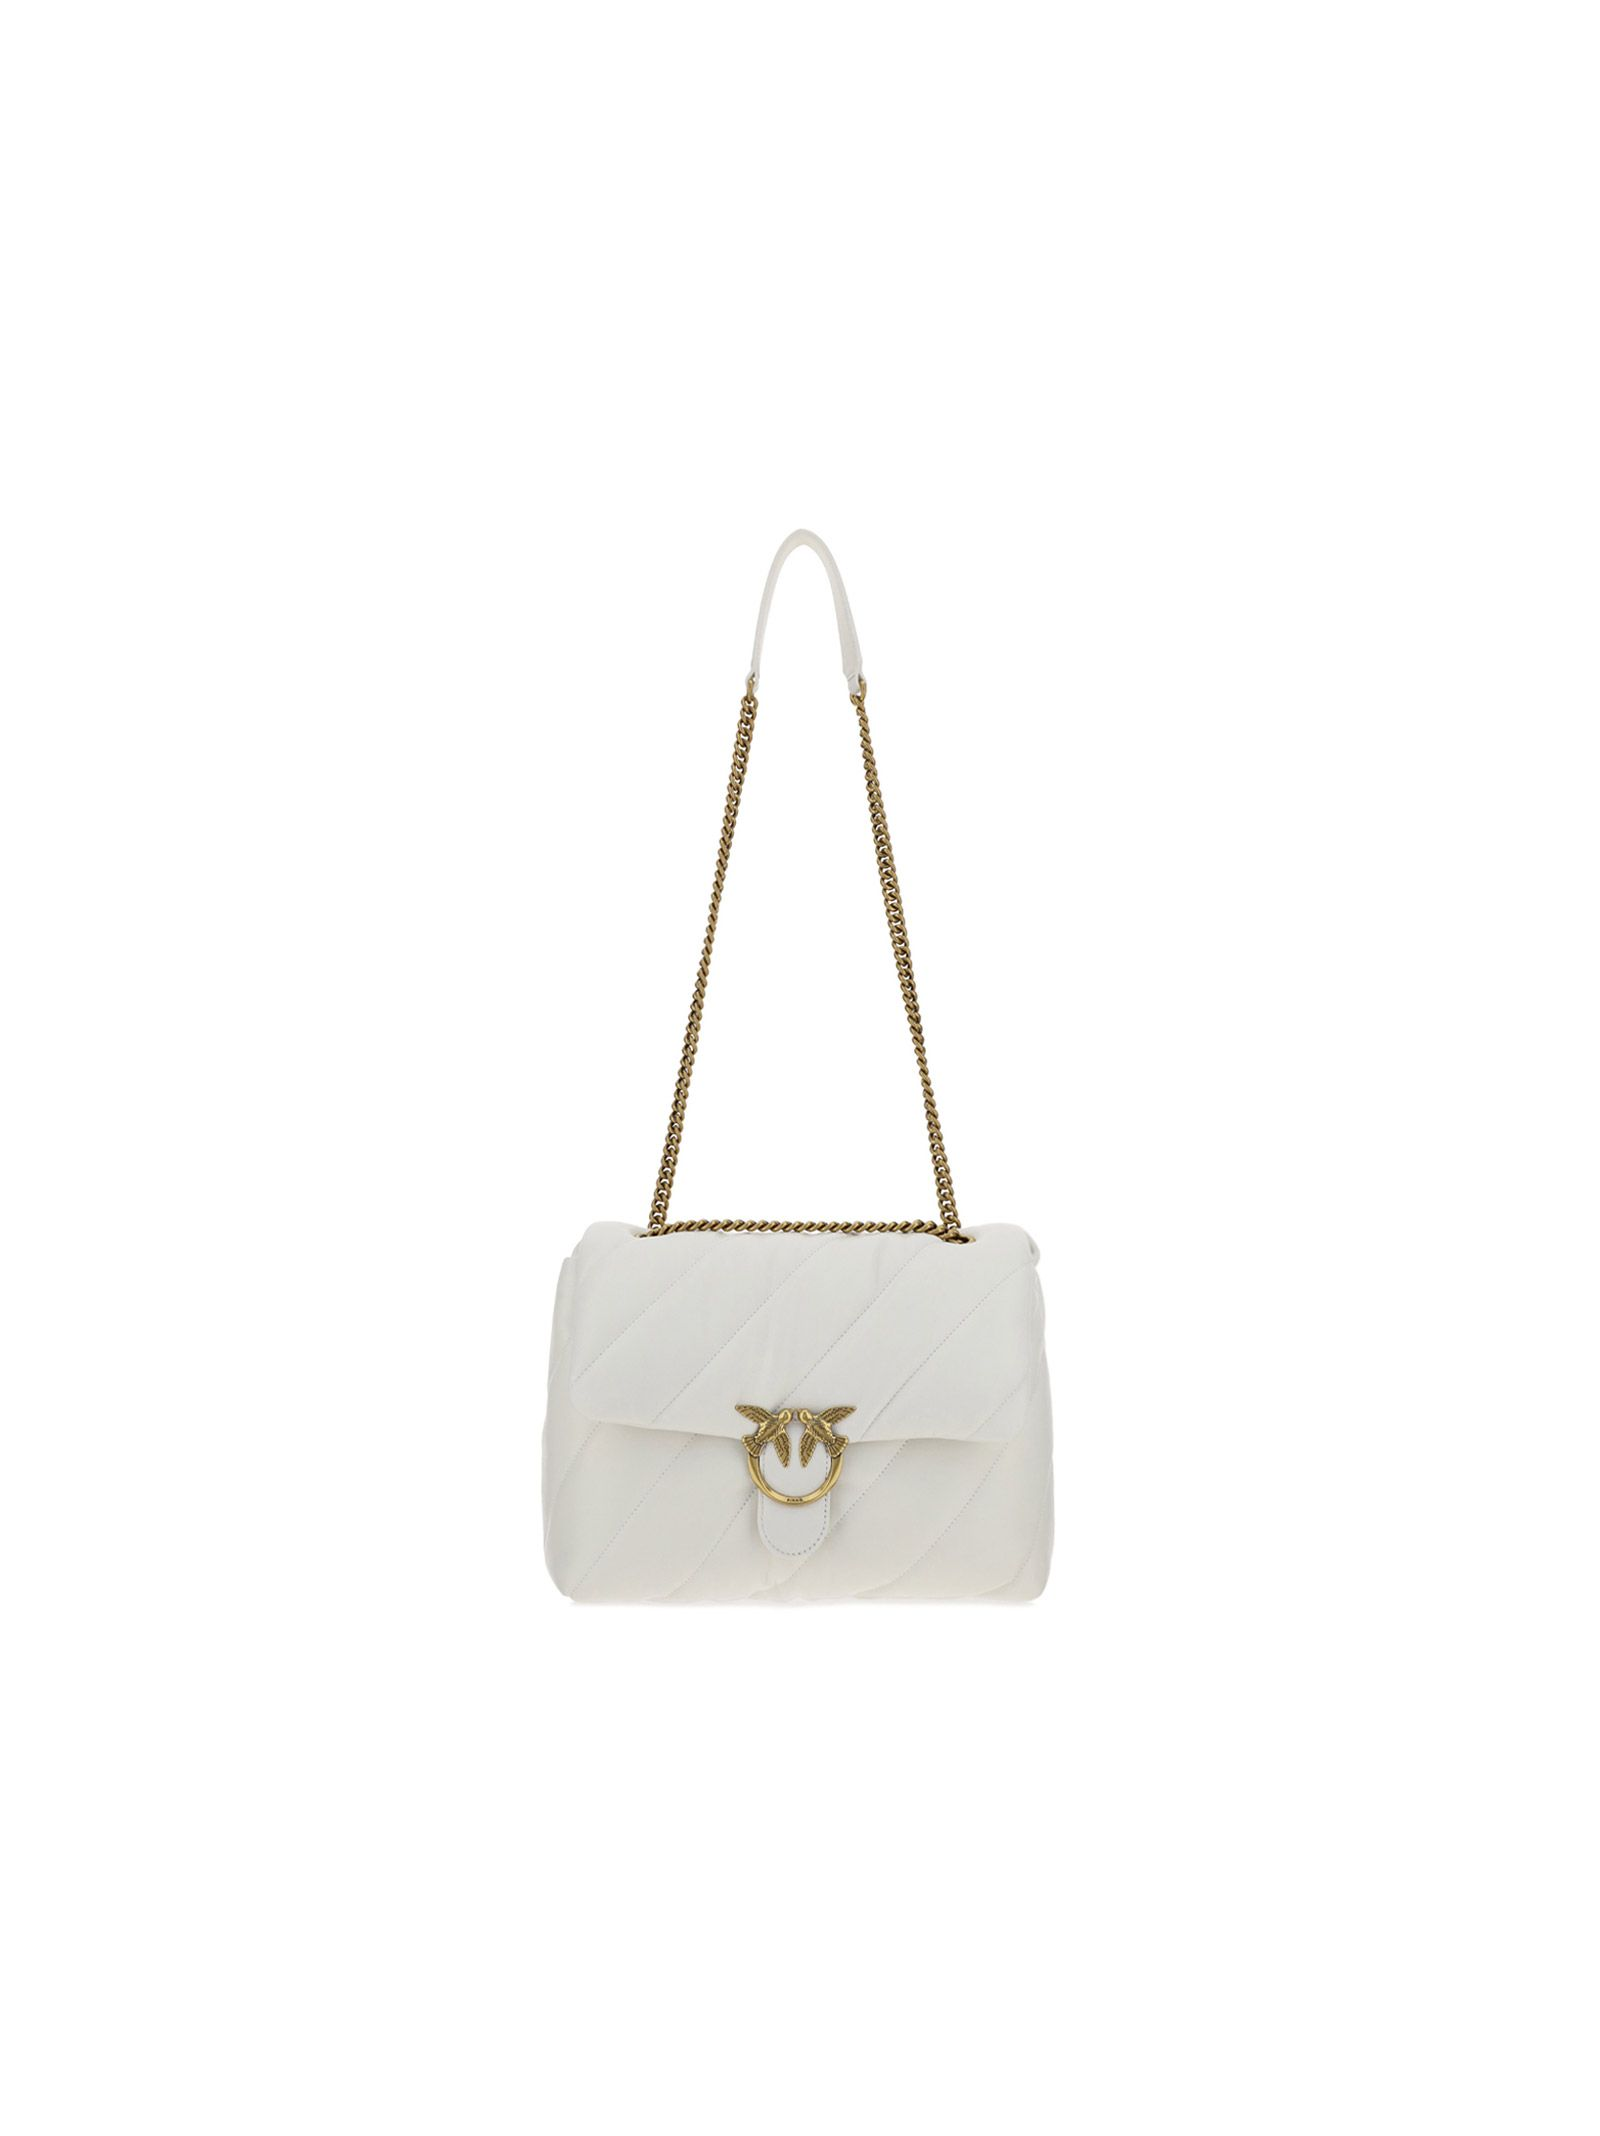 Pinko PINKO WOMEN'S 1P222VY6Y3Z14 WHITE OTHER MATERIALS SHOULDER BAG